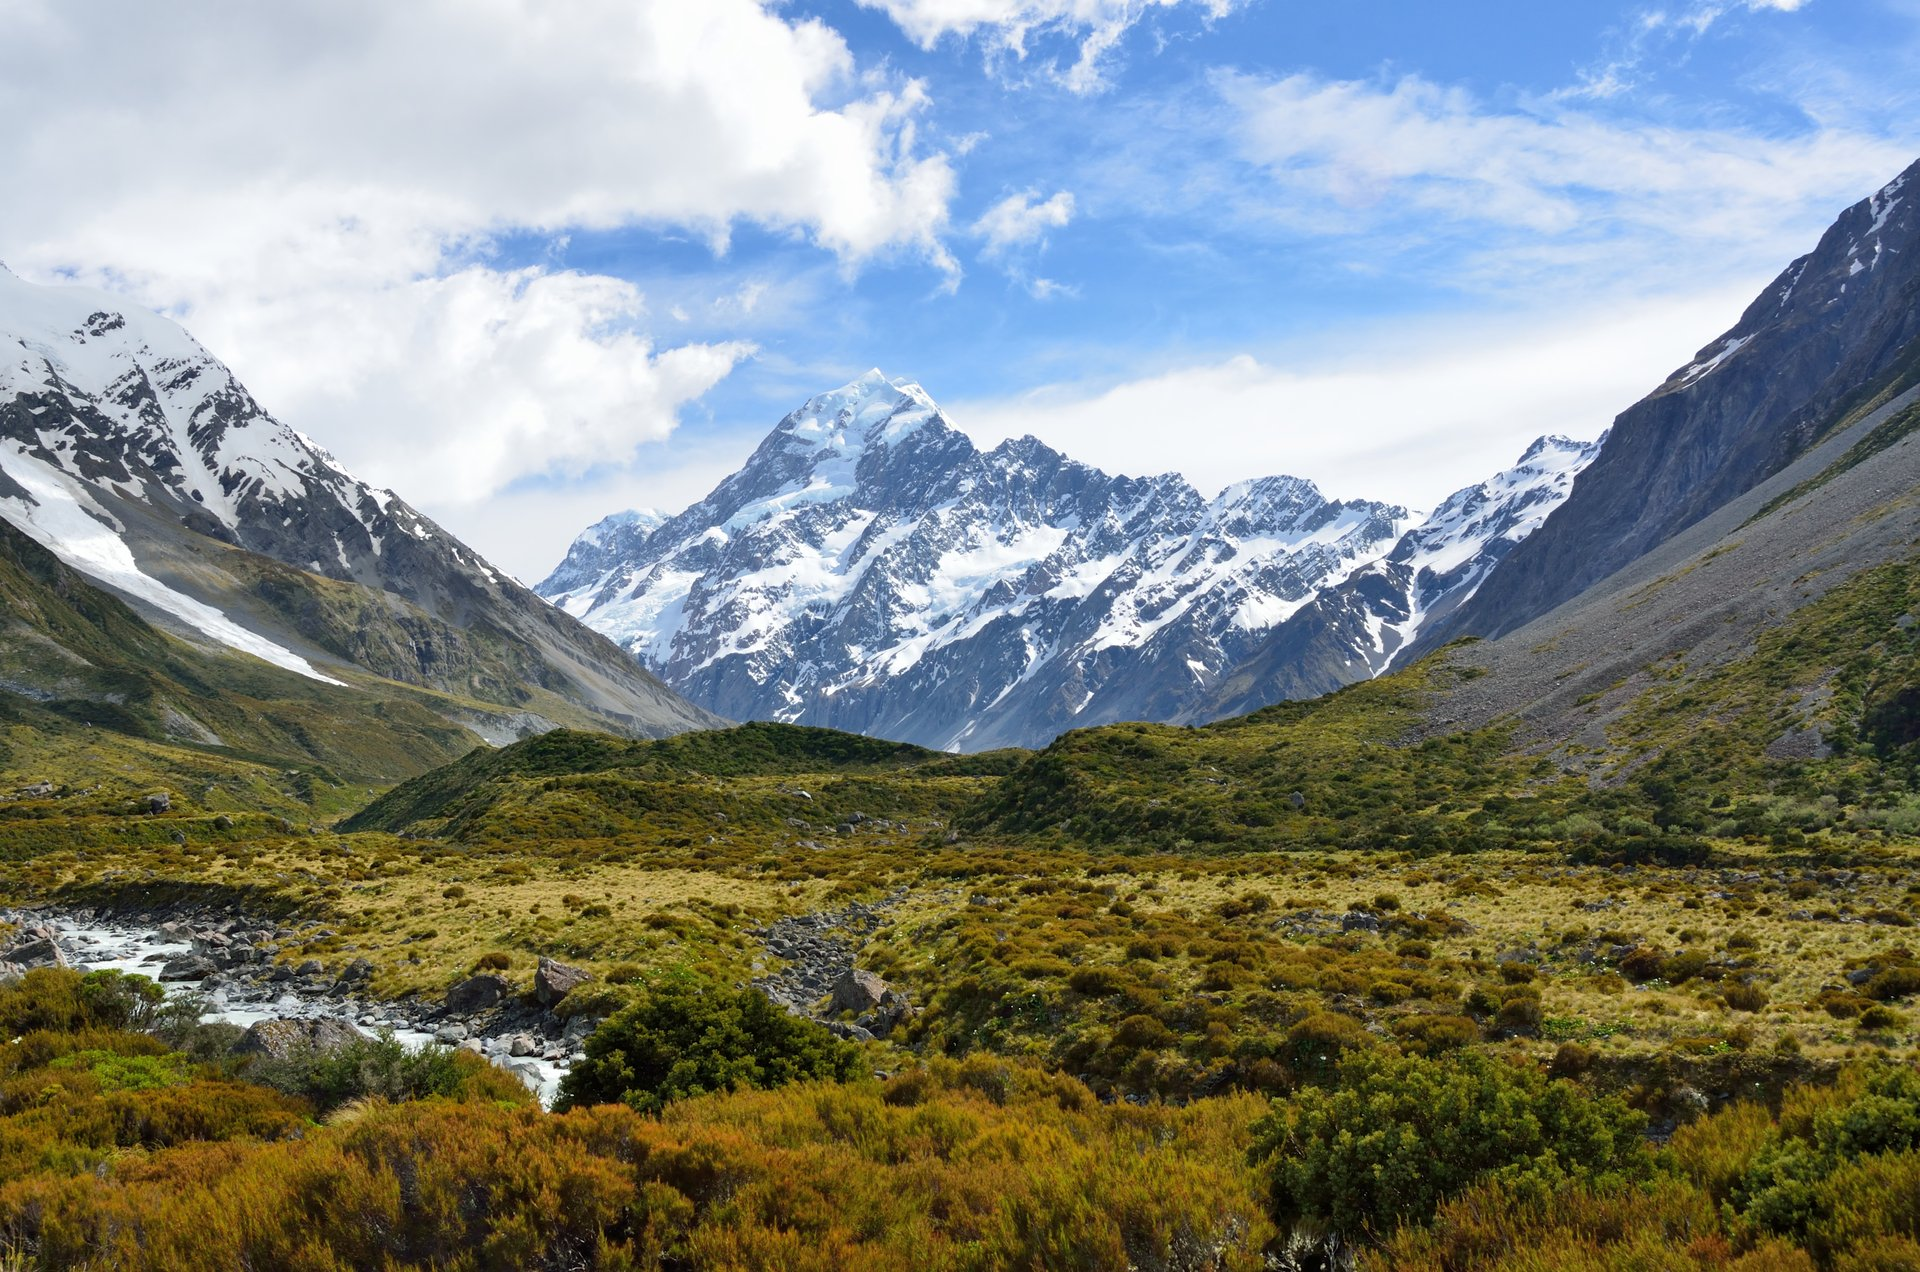 Climbing Mount Cook in New Zealand 2020 - Best Time